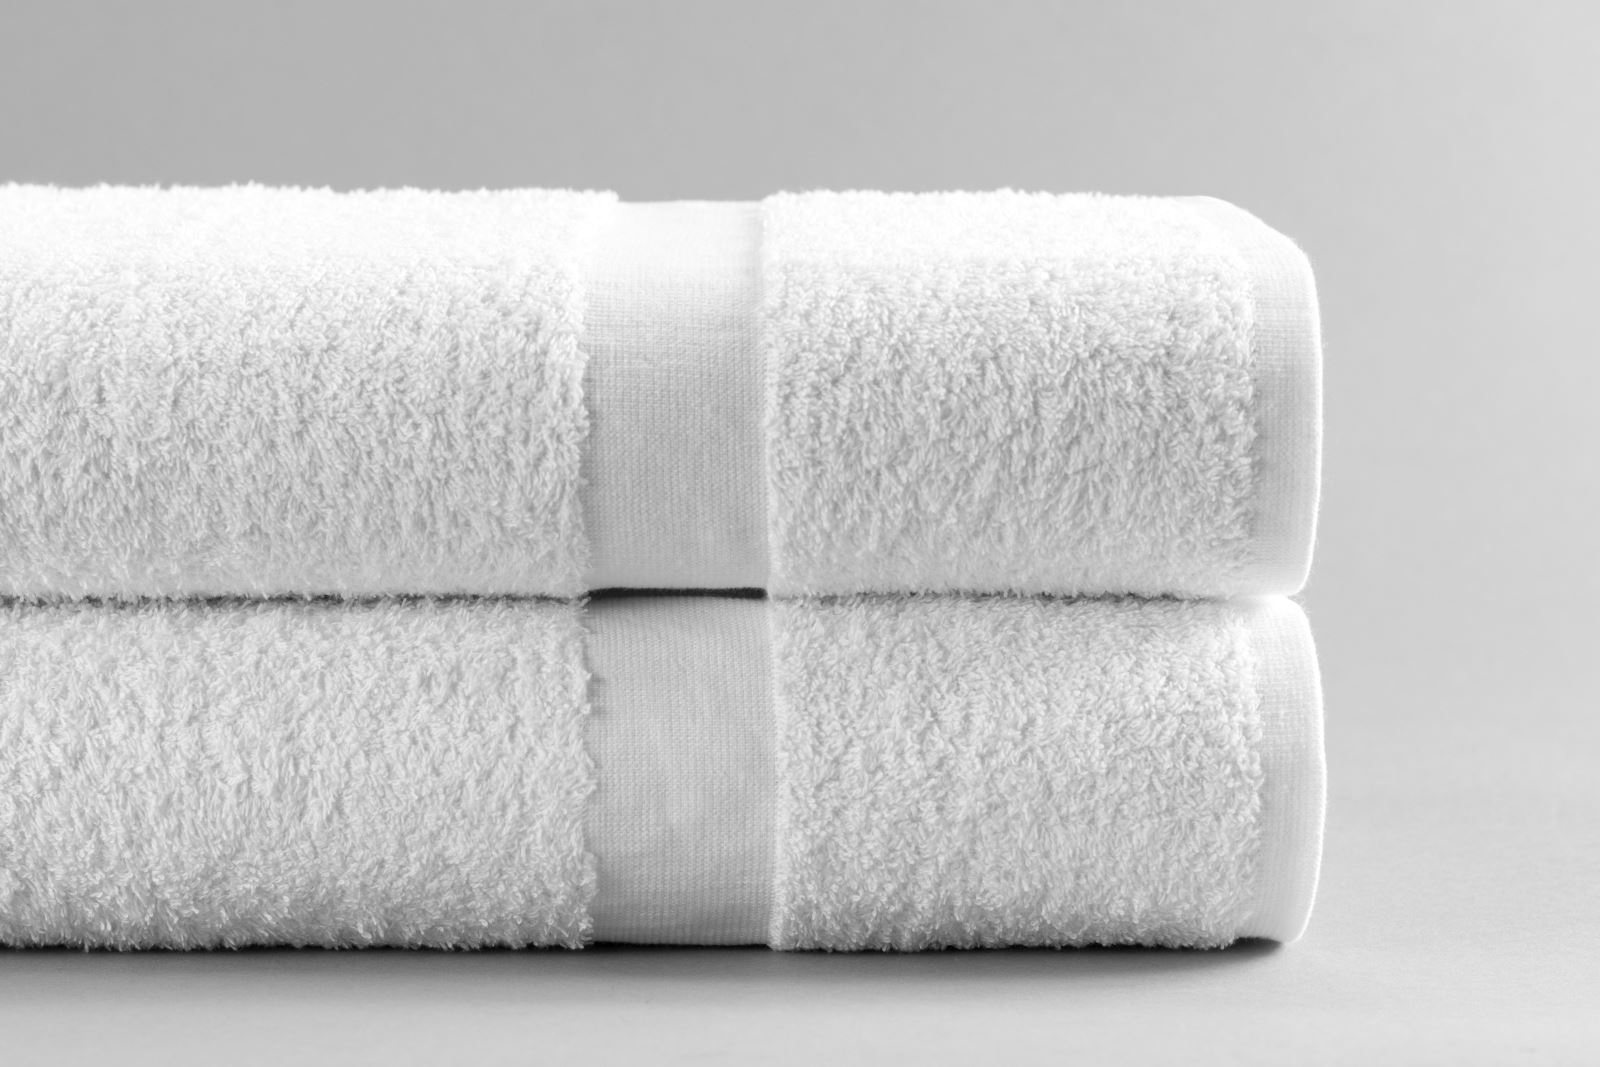 24x50 10.5# Bath Towel;86/14